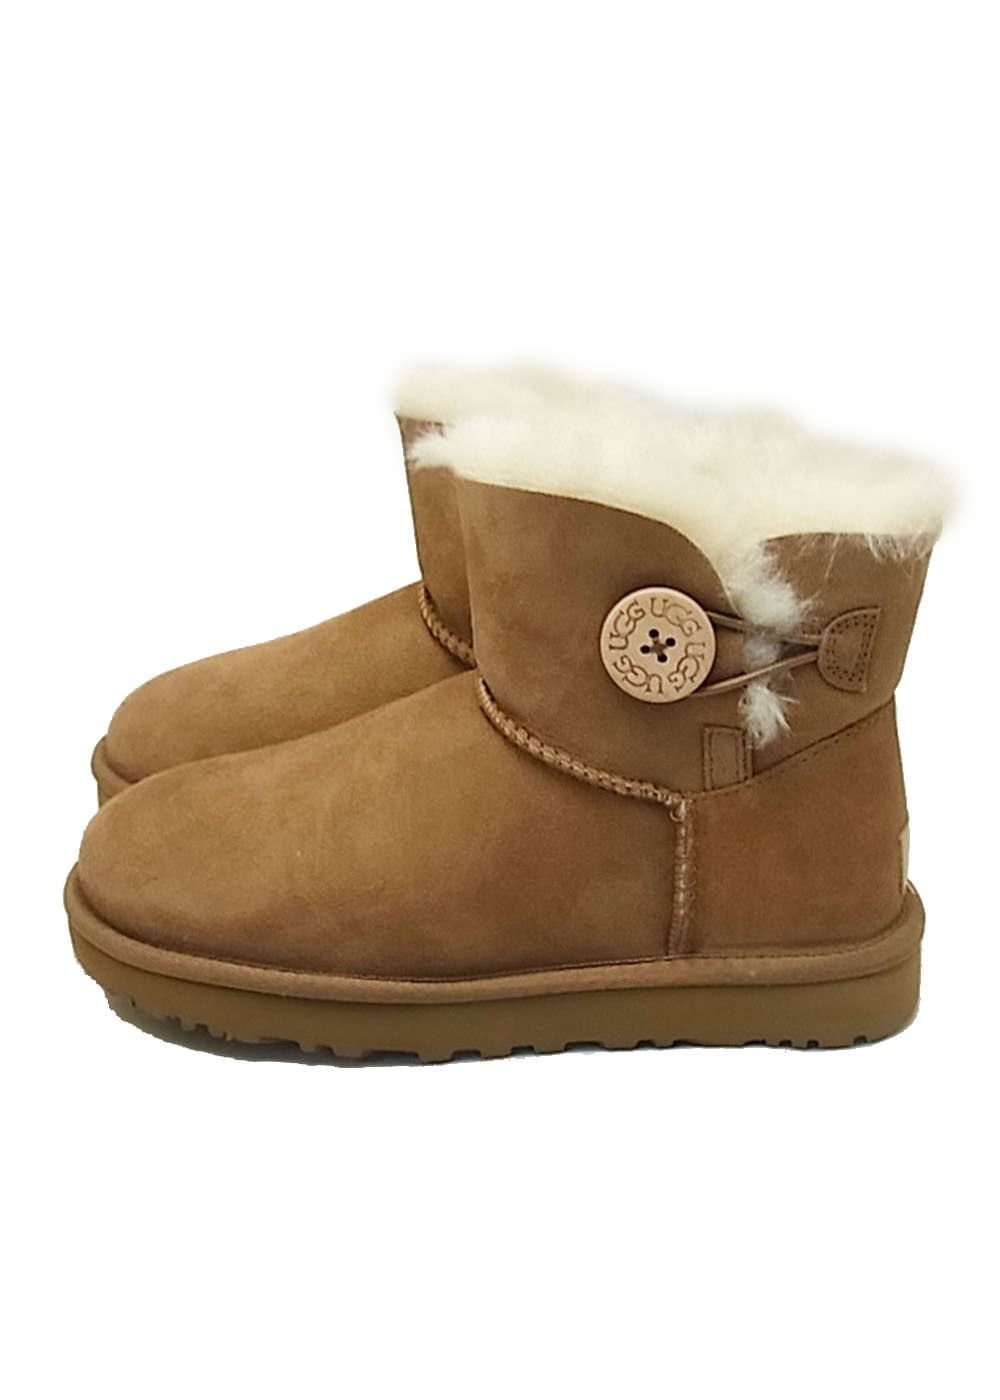 MINI  BAILEY BUTTON|CHESTNUT|ブーツ|UGG(M)|最大30%OFF